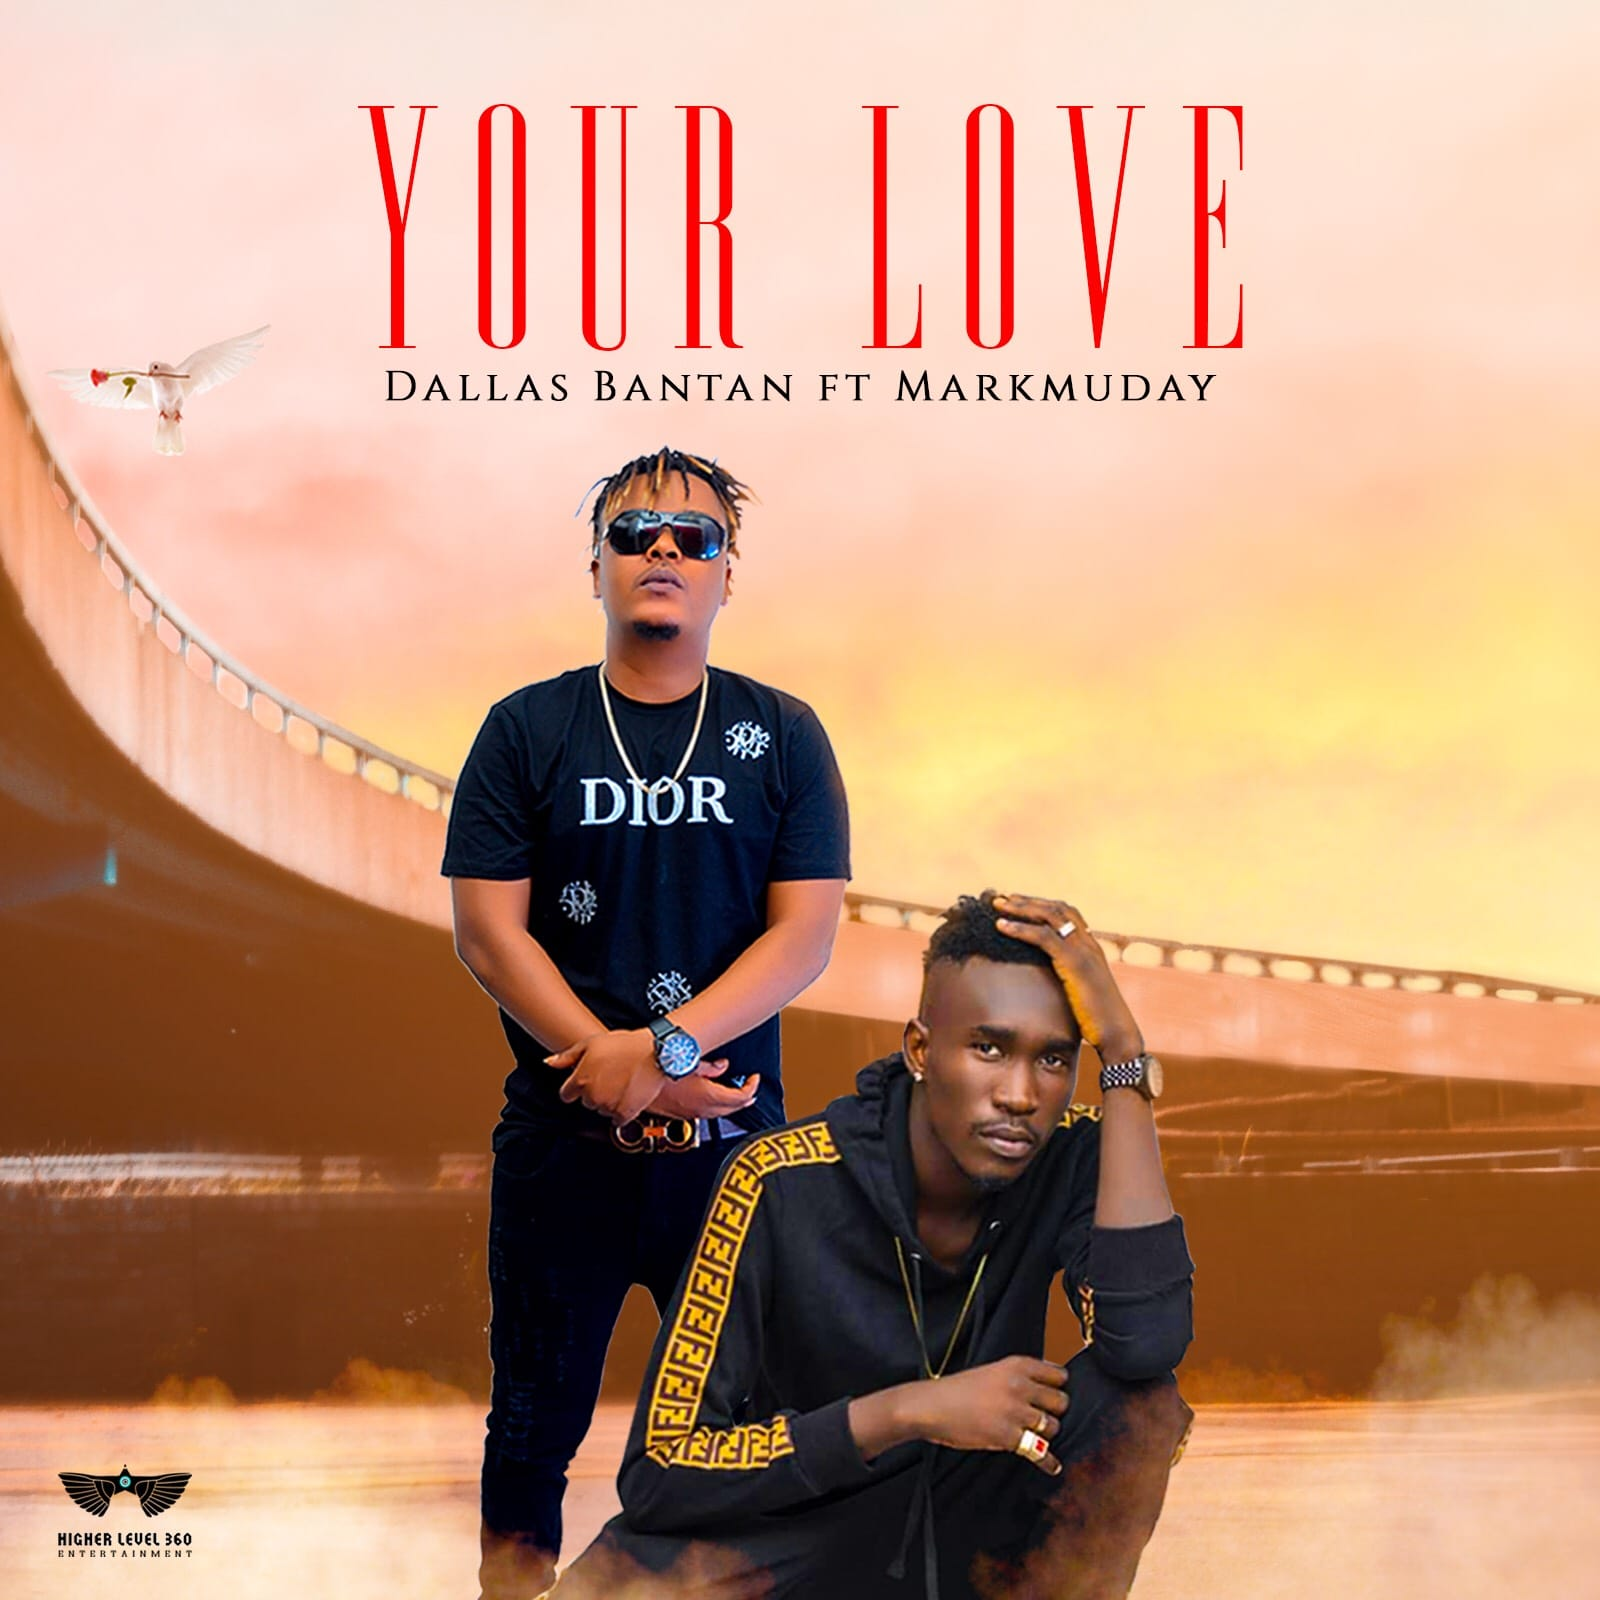 Your love art cover